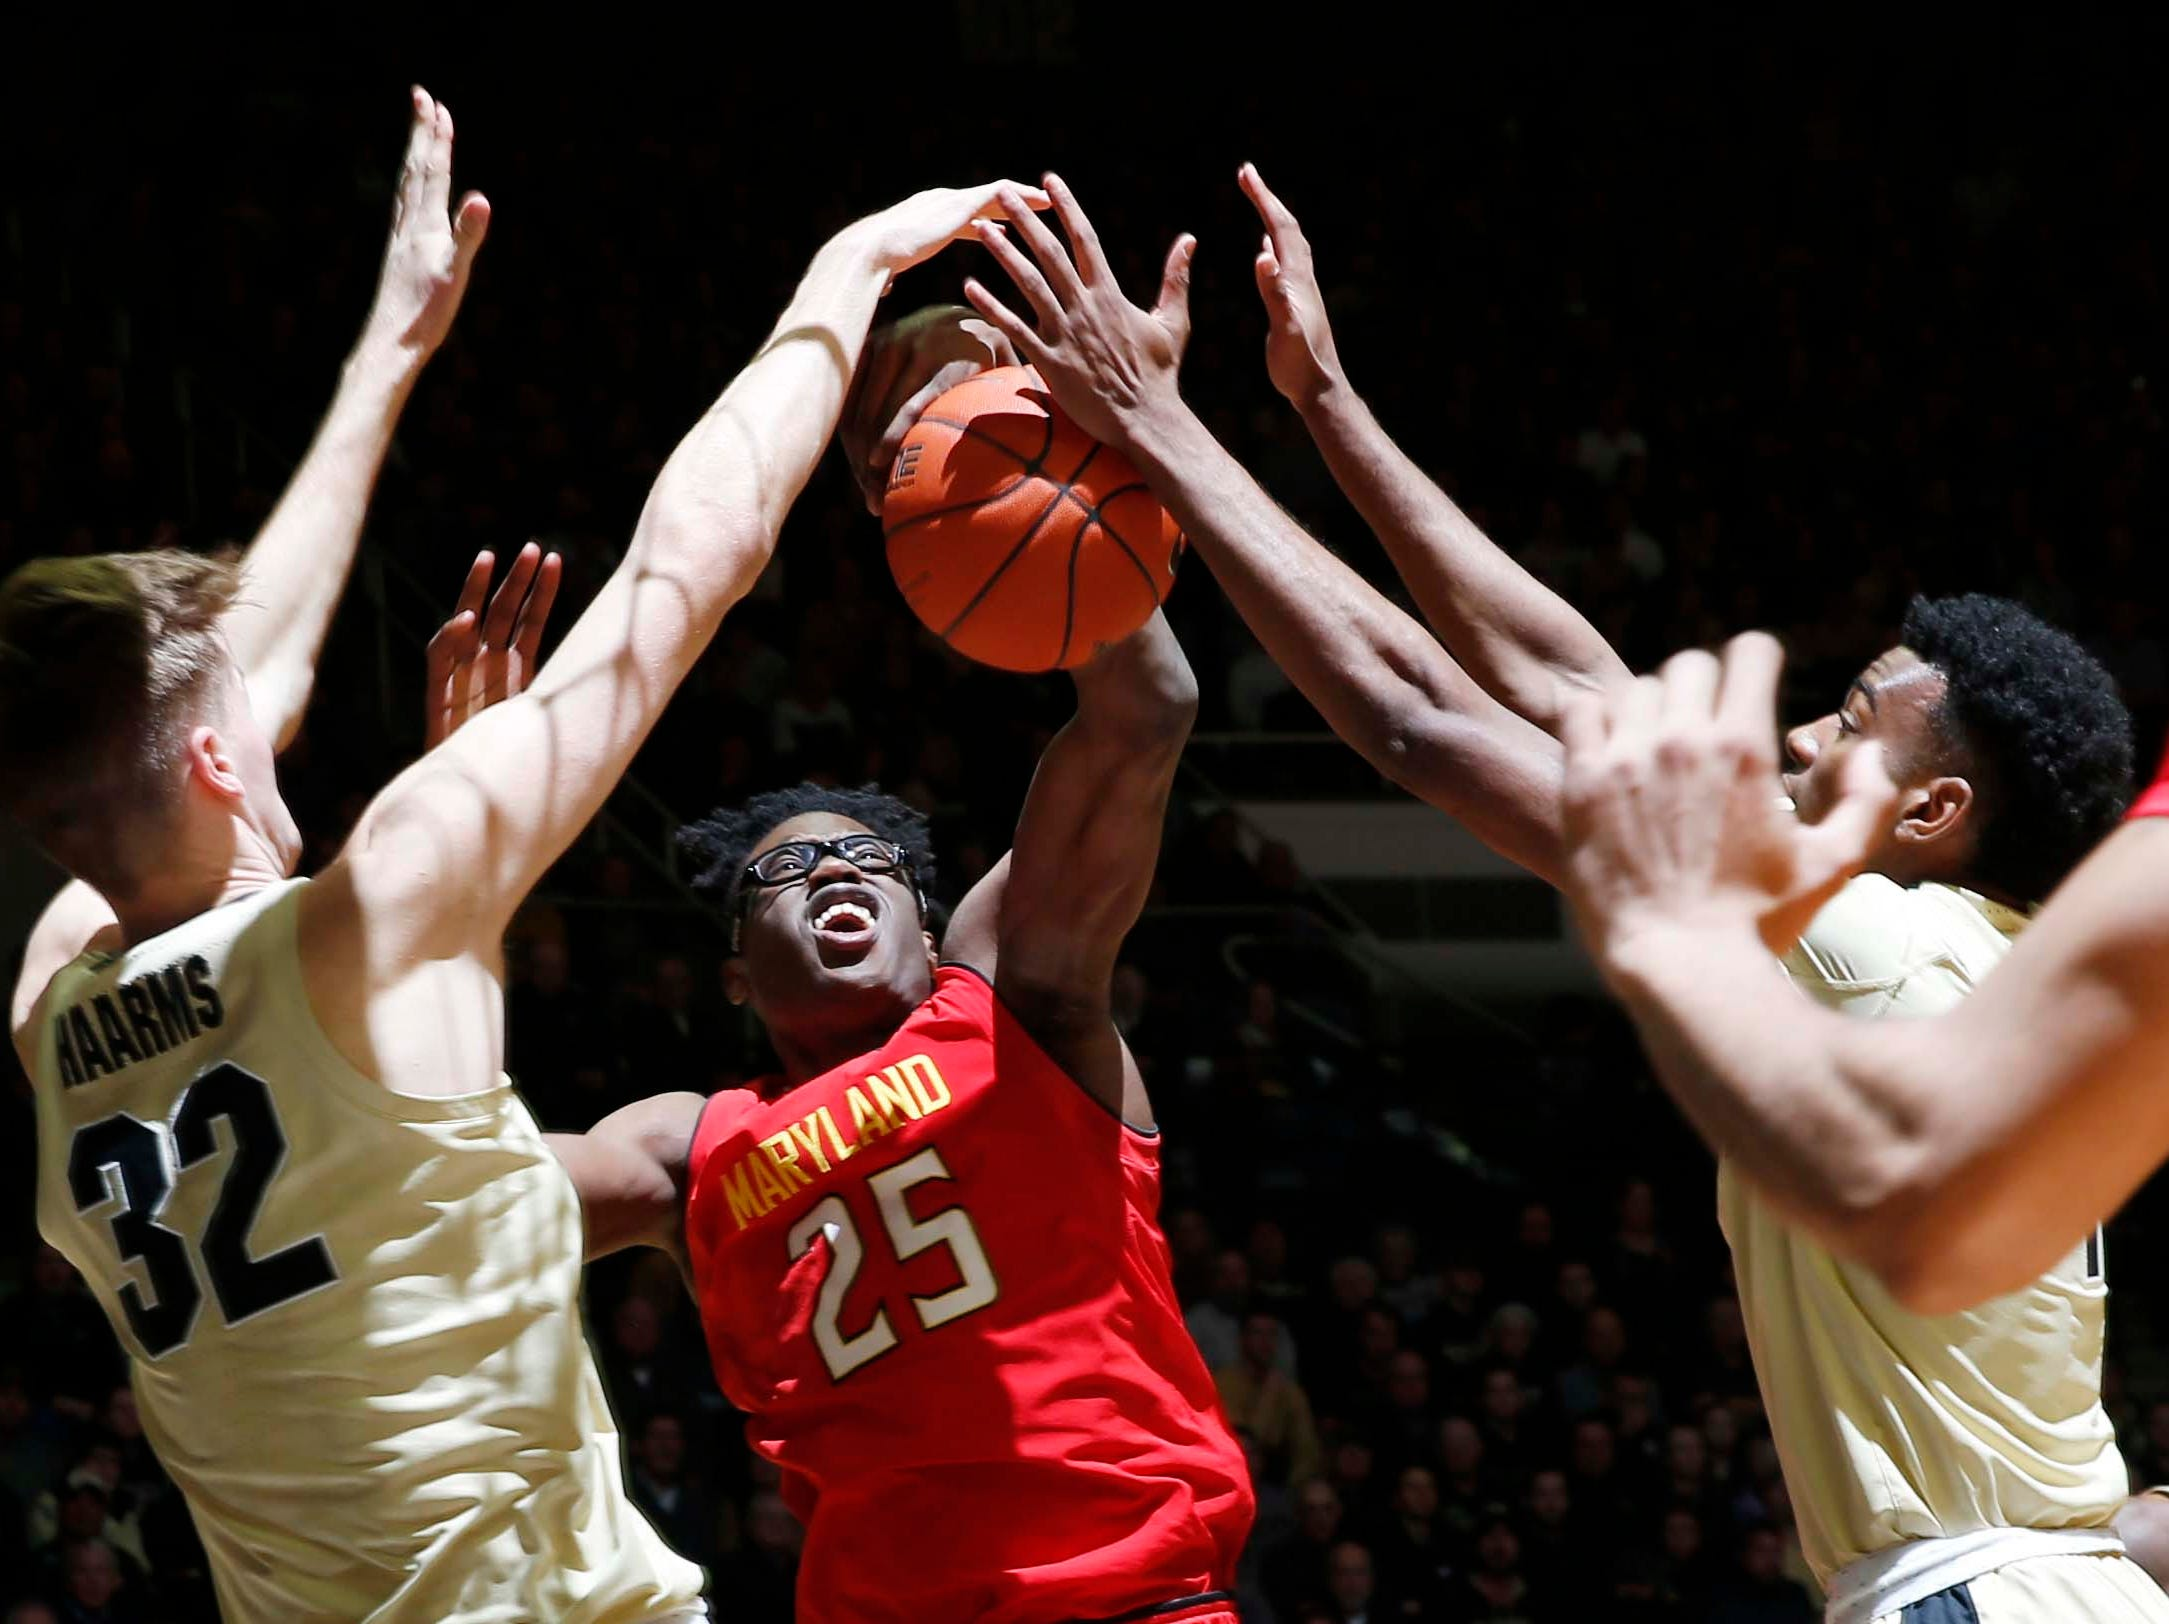 Dec 6, 2018; West Lafayette, IN, USA; Maryland Terrapins forward Jalen Smith (25) has his shot blocked by Purdue Boilermakers center Matt Haarms (32) during the first half at Mackey Arena. Mandatory Credit: Brian Spurlock-USA TODAY Sports